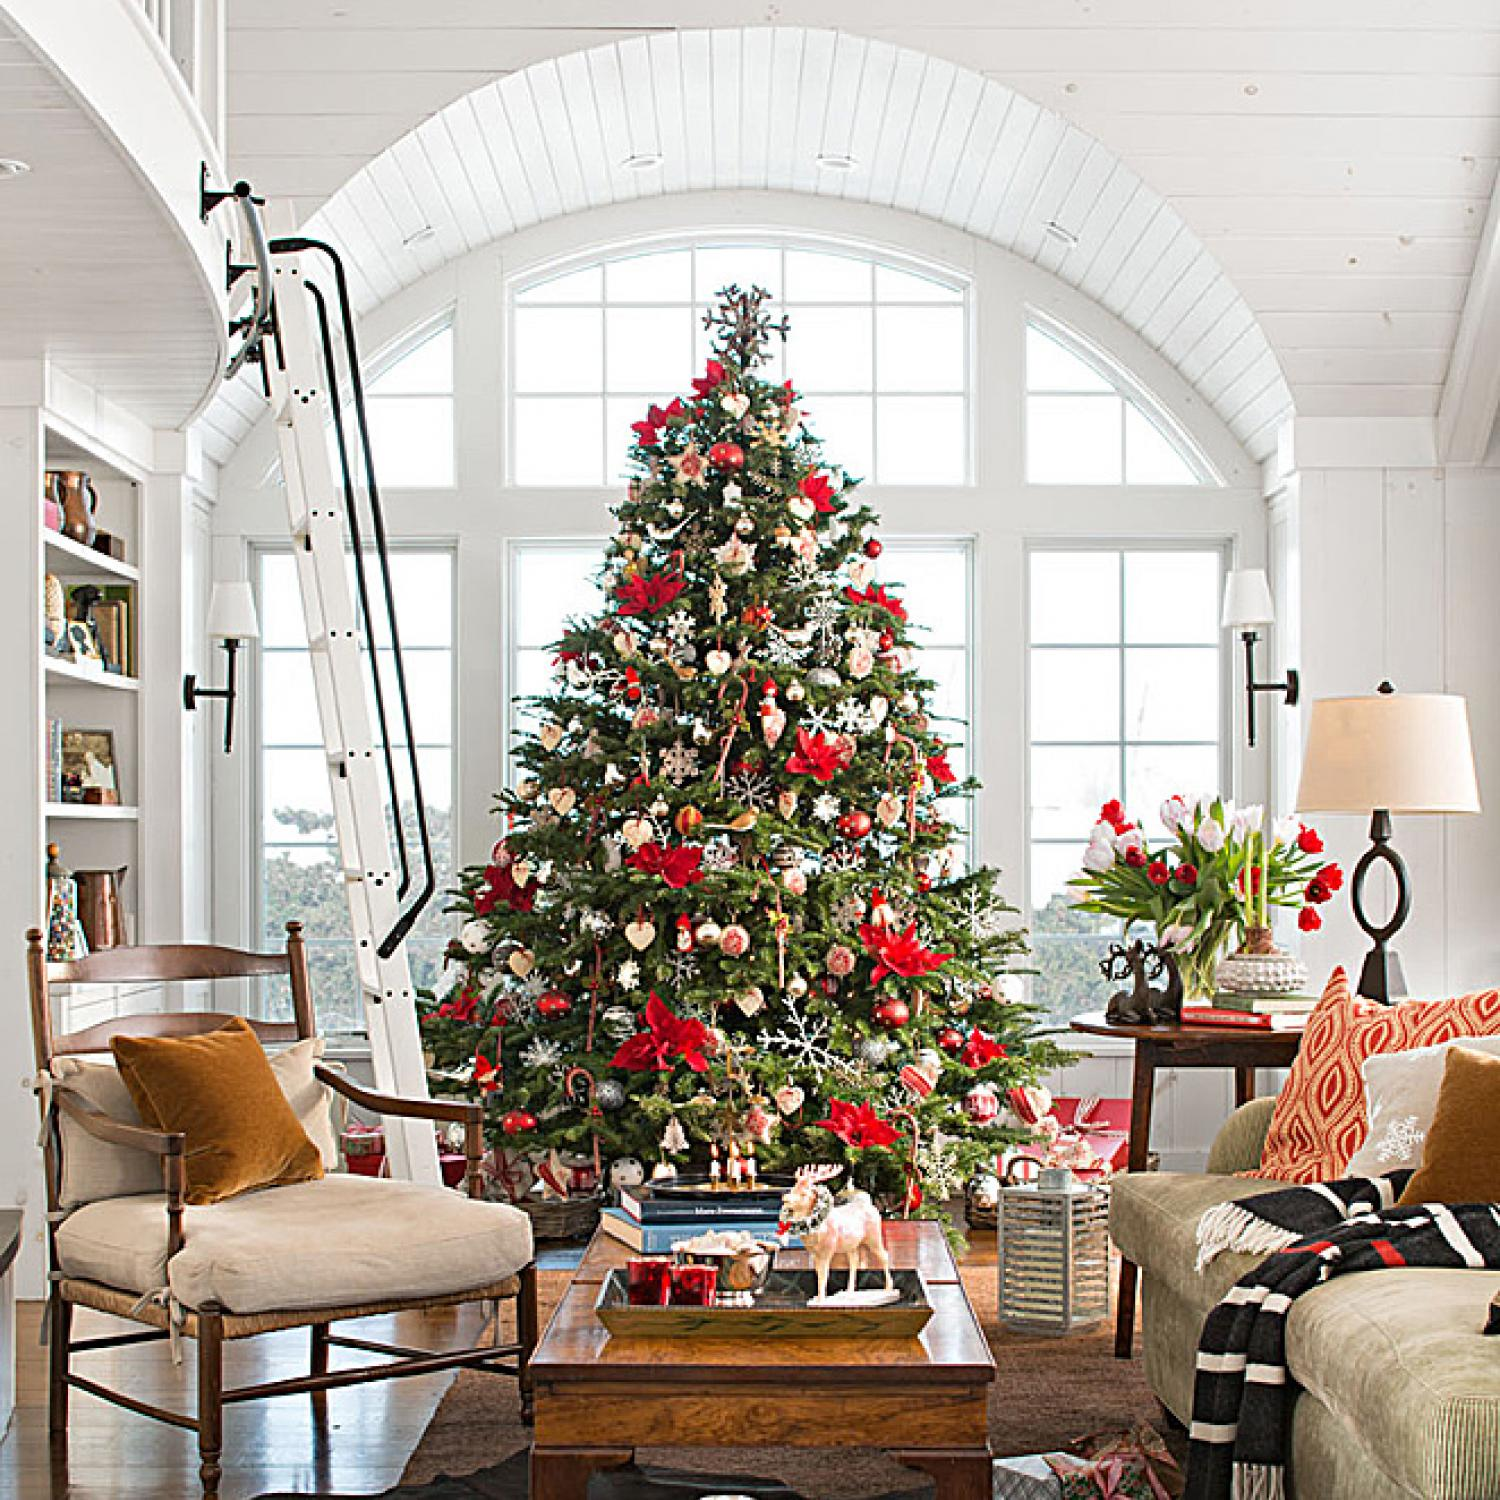 Snowy vermont home ready for christmas traditional home for Home decorations ideas for free